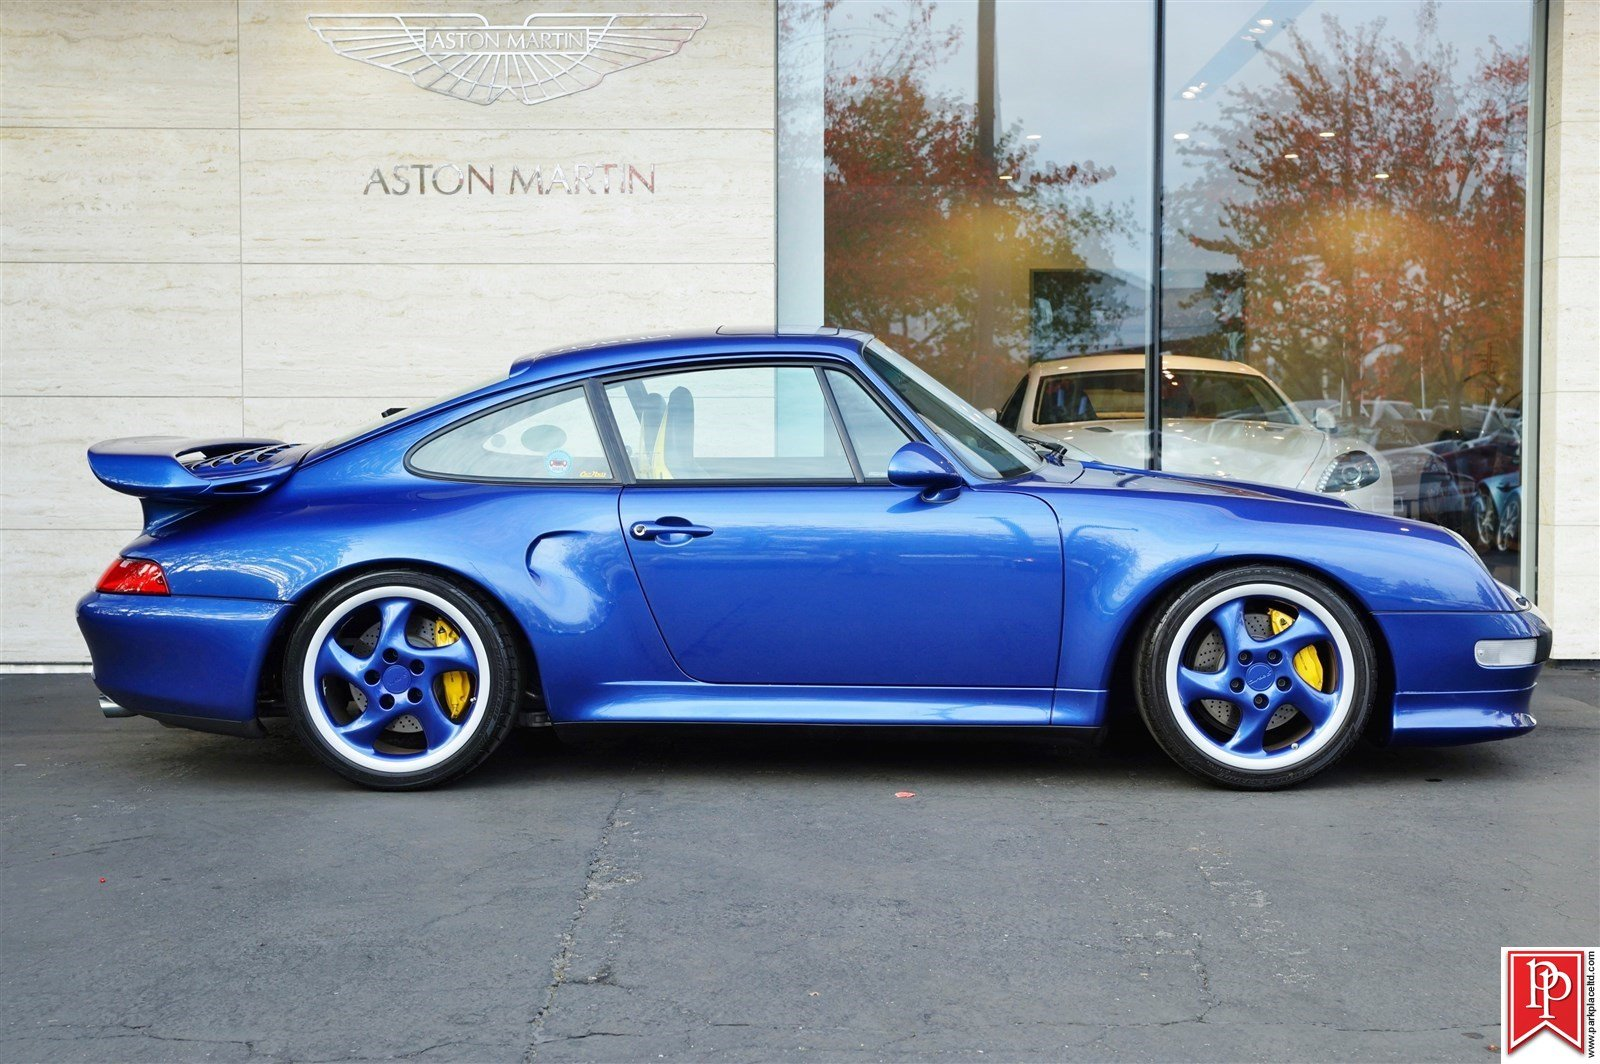 acura of bellevue with The Finest Porsche 993 Turbo S On The Market on lexusofbellevue in addition Honda Odyssey Lease furthermore Used Cars Omaha in addition 94528 together with All Porsche Models.